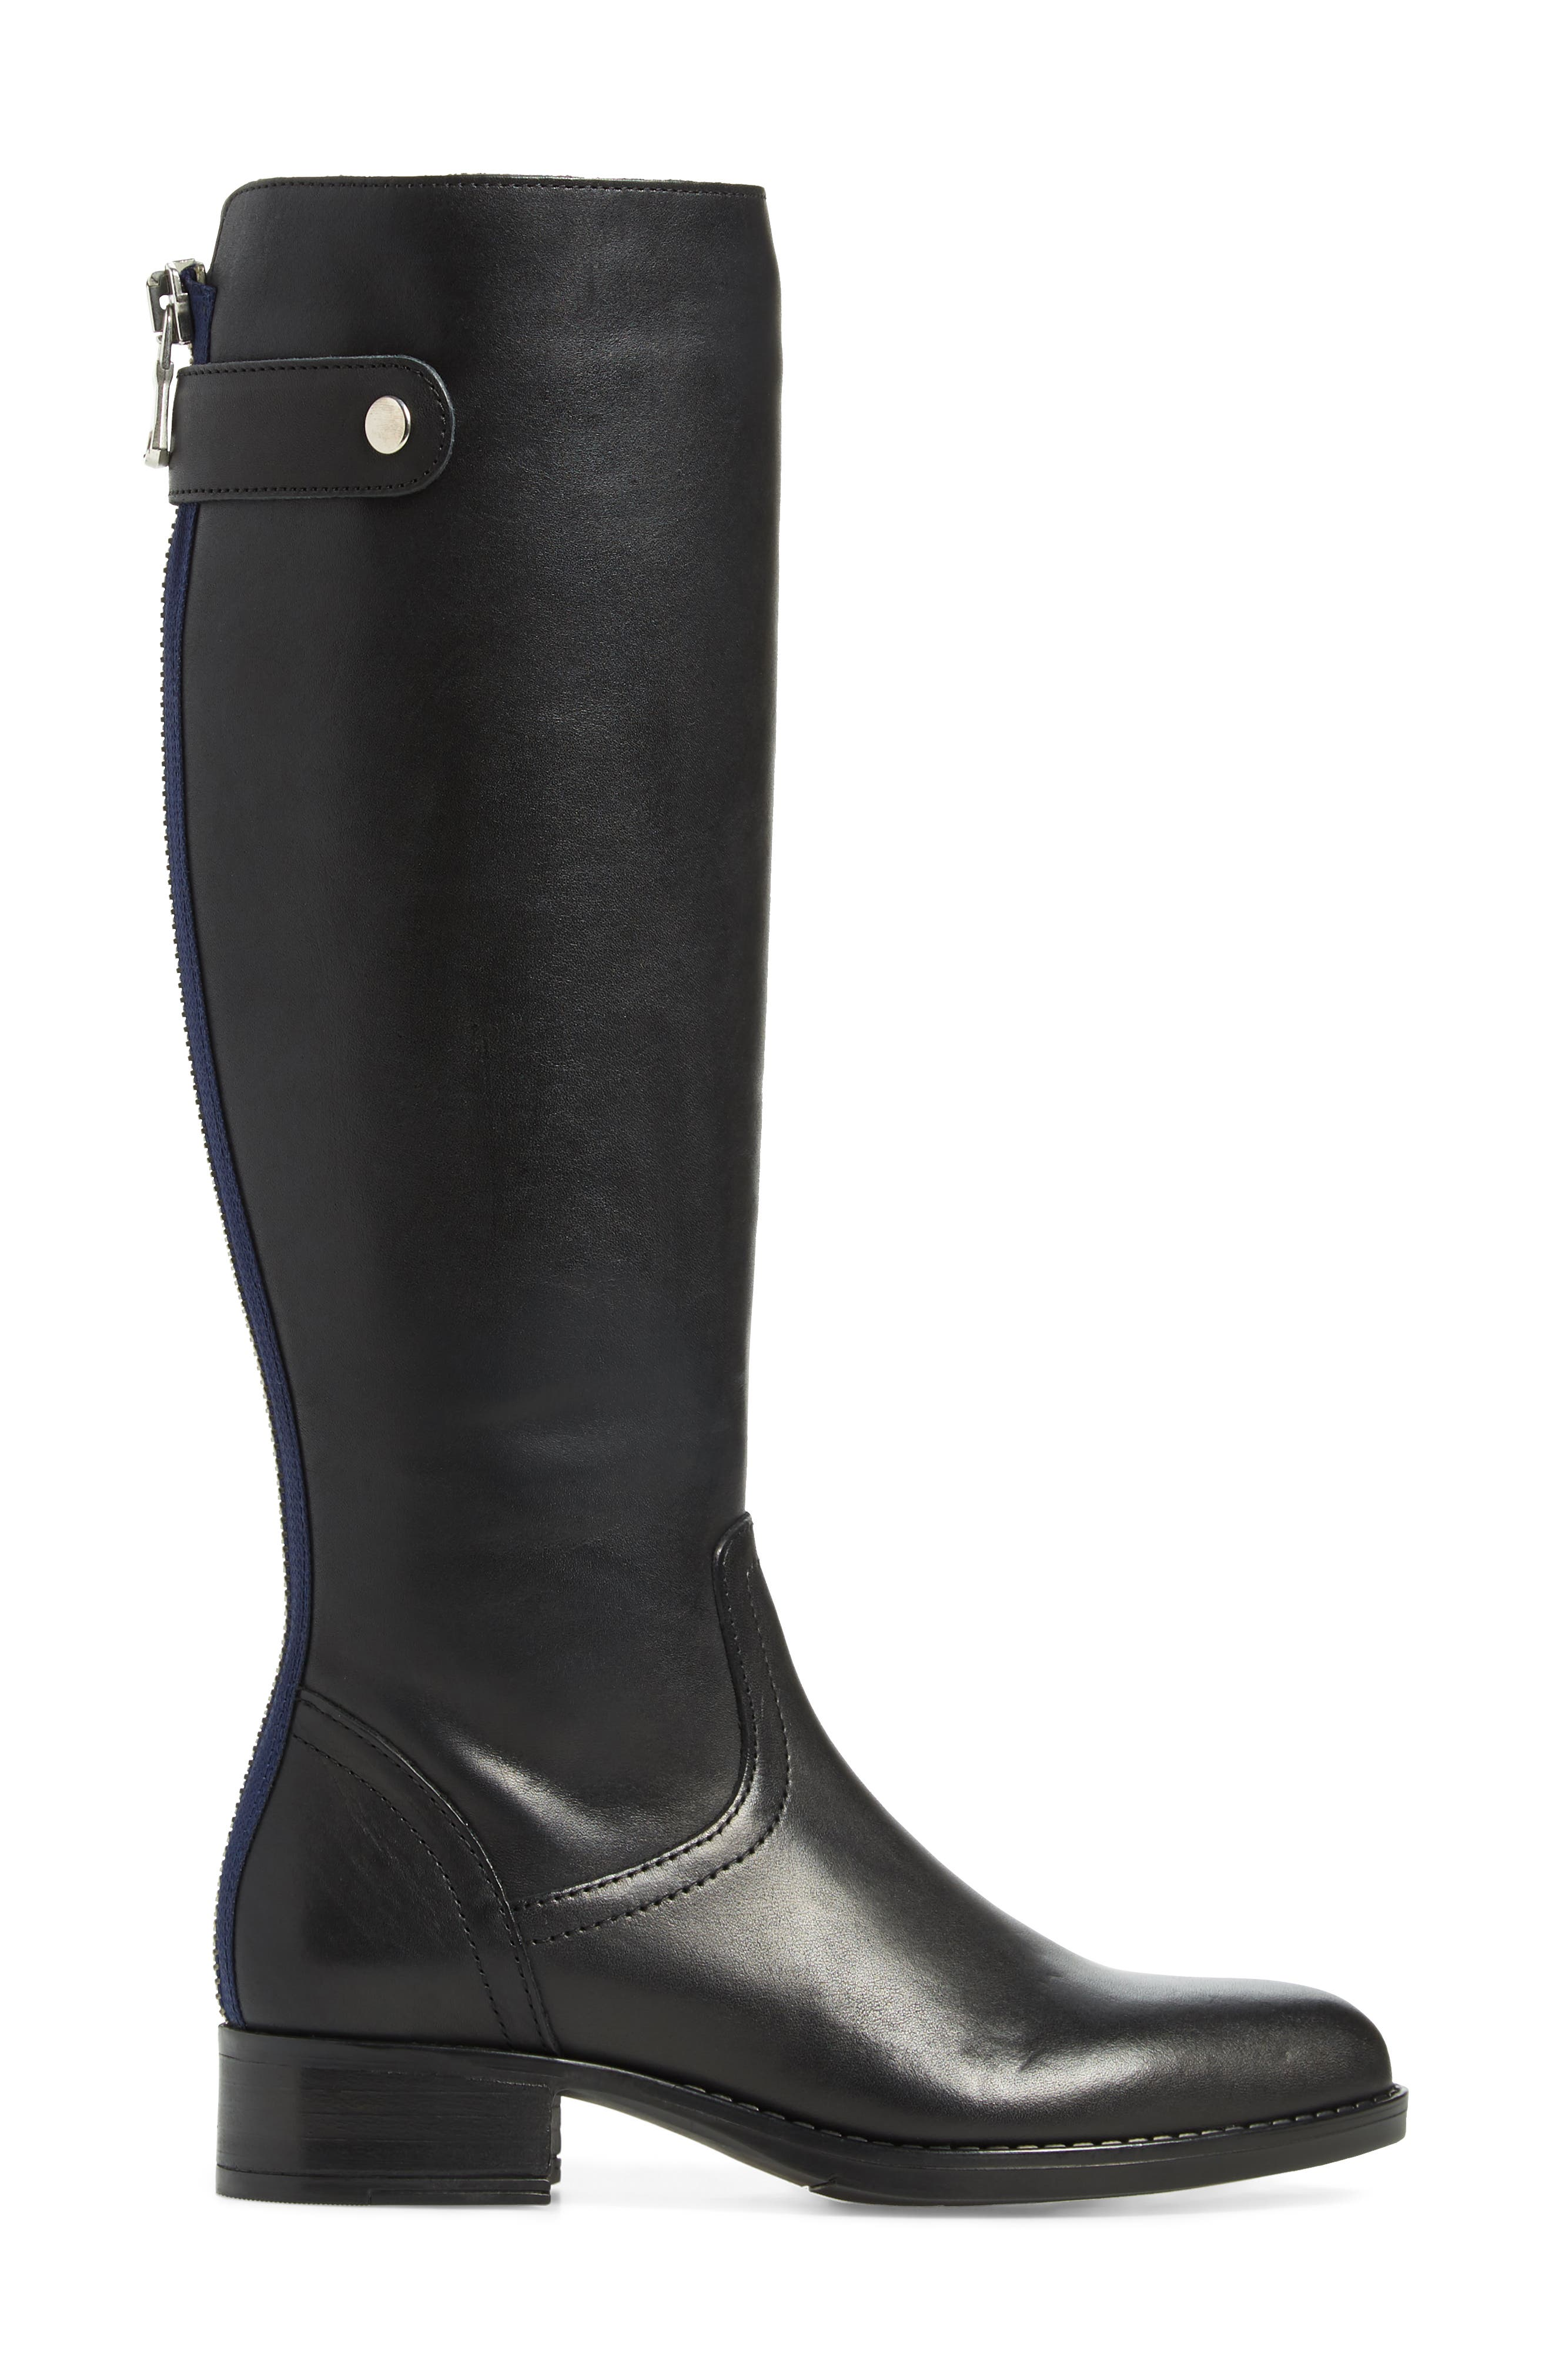 Journal Knee High Boot,                             Alternate thumbnail 3, color,                             BLACK LEATHER